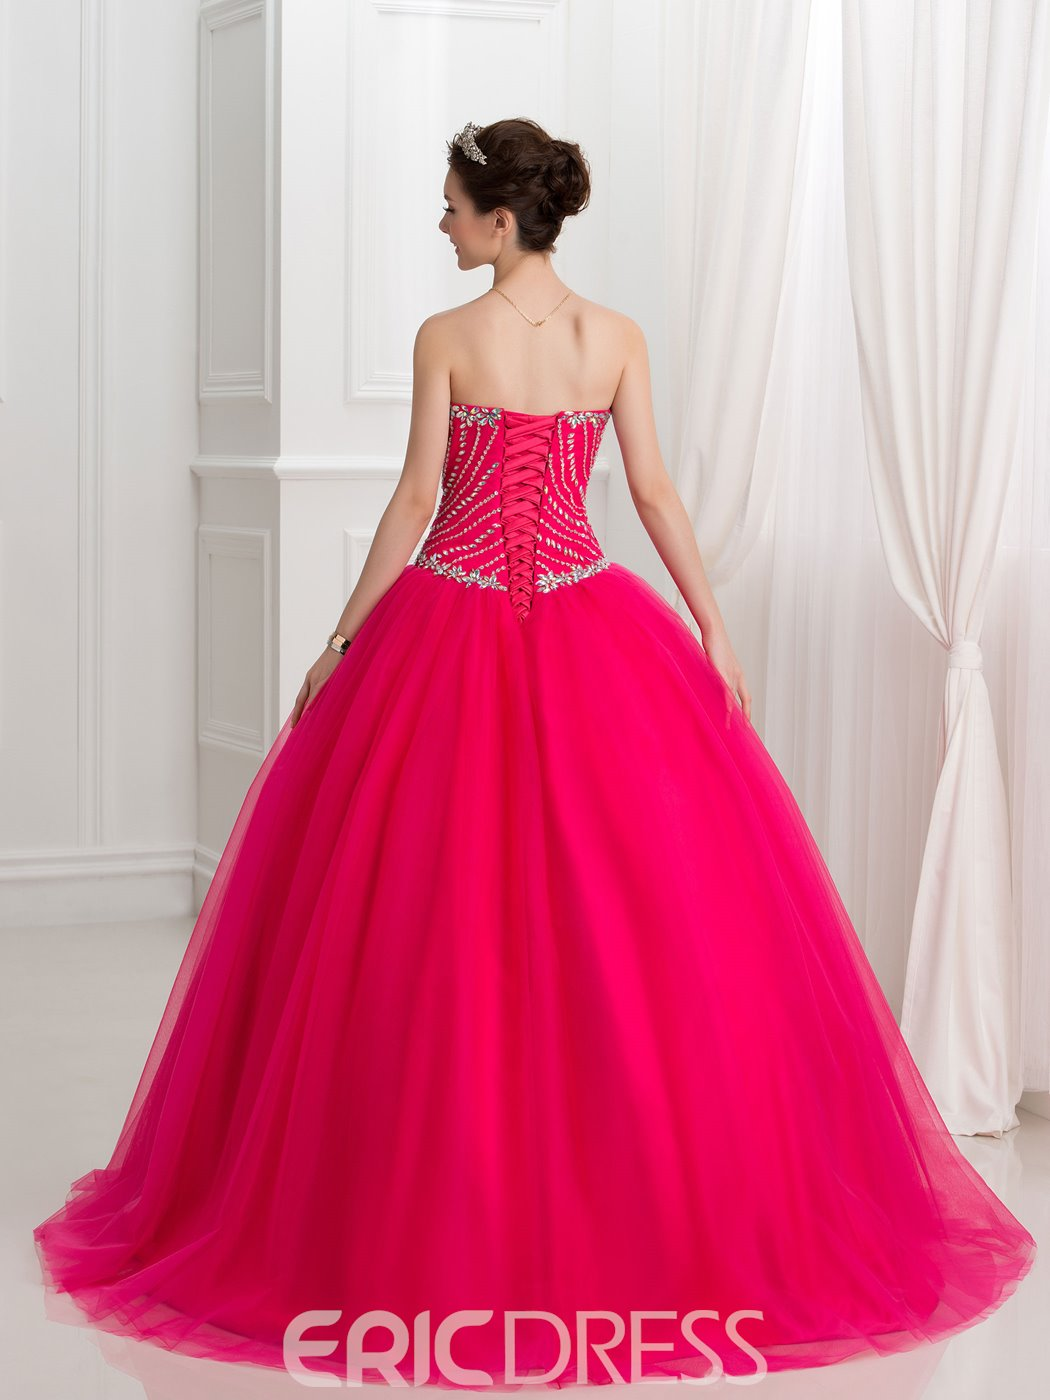 Ericdress Sweetheart Beaded Lace-Up Ball Gown Quinceanera Dress